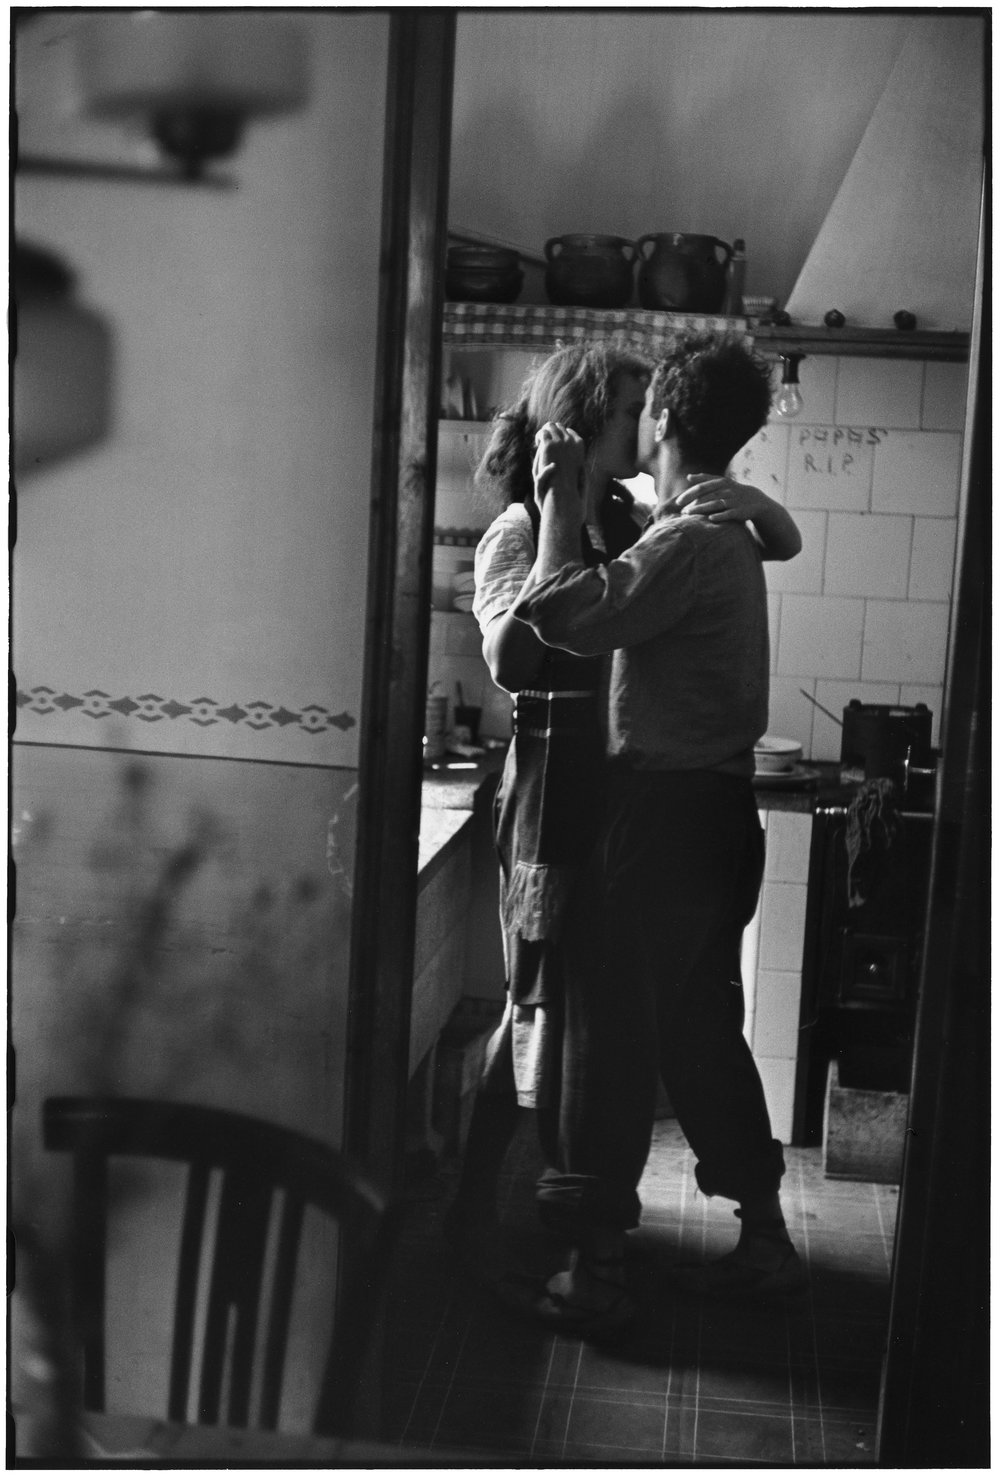 Elliot Erwitt,  Valencia, Spain,  1952. Gelatin silver print, 20 x 24 inches. Courtesy of Weinstein Hammons Gallery, Minneapolis.